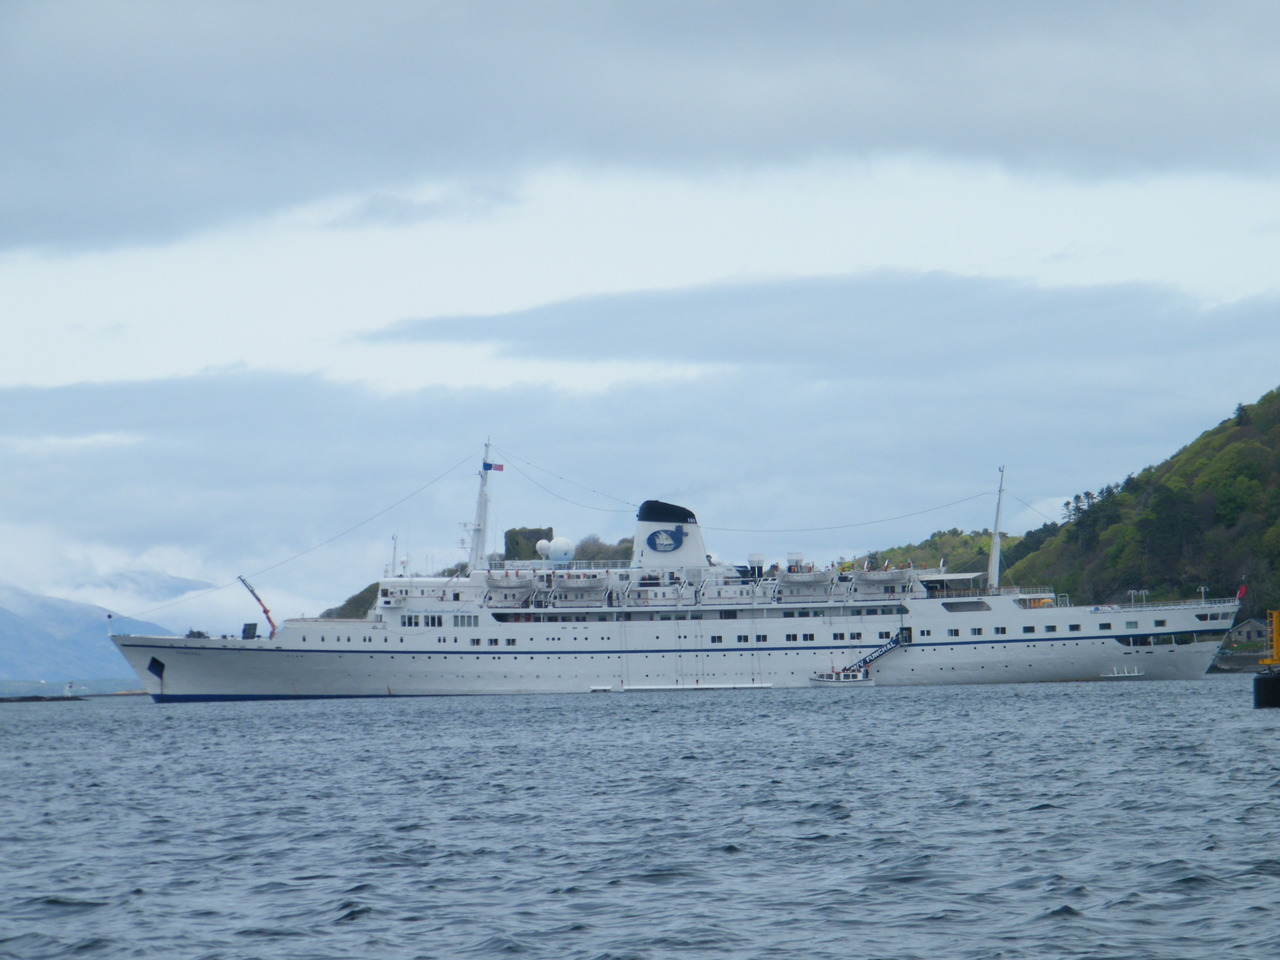 Cruise Ship Funchal in Oban Bay